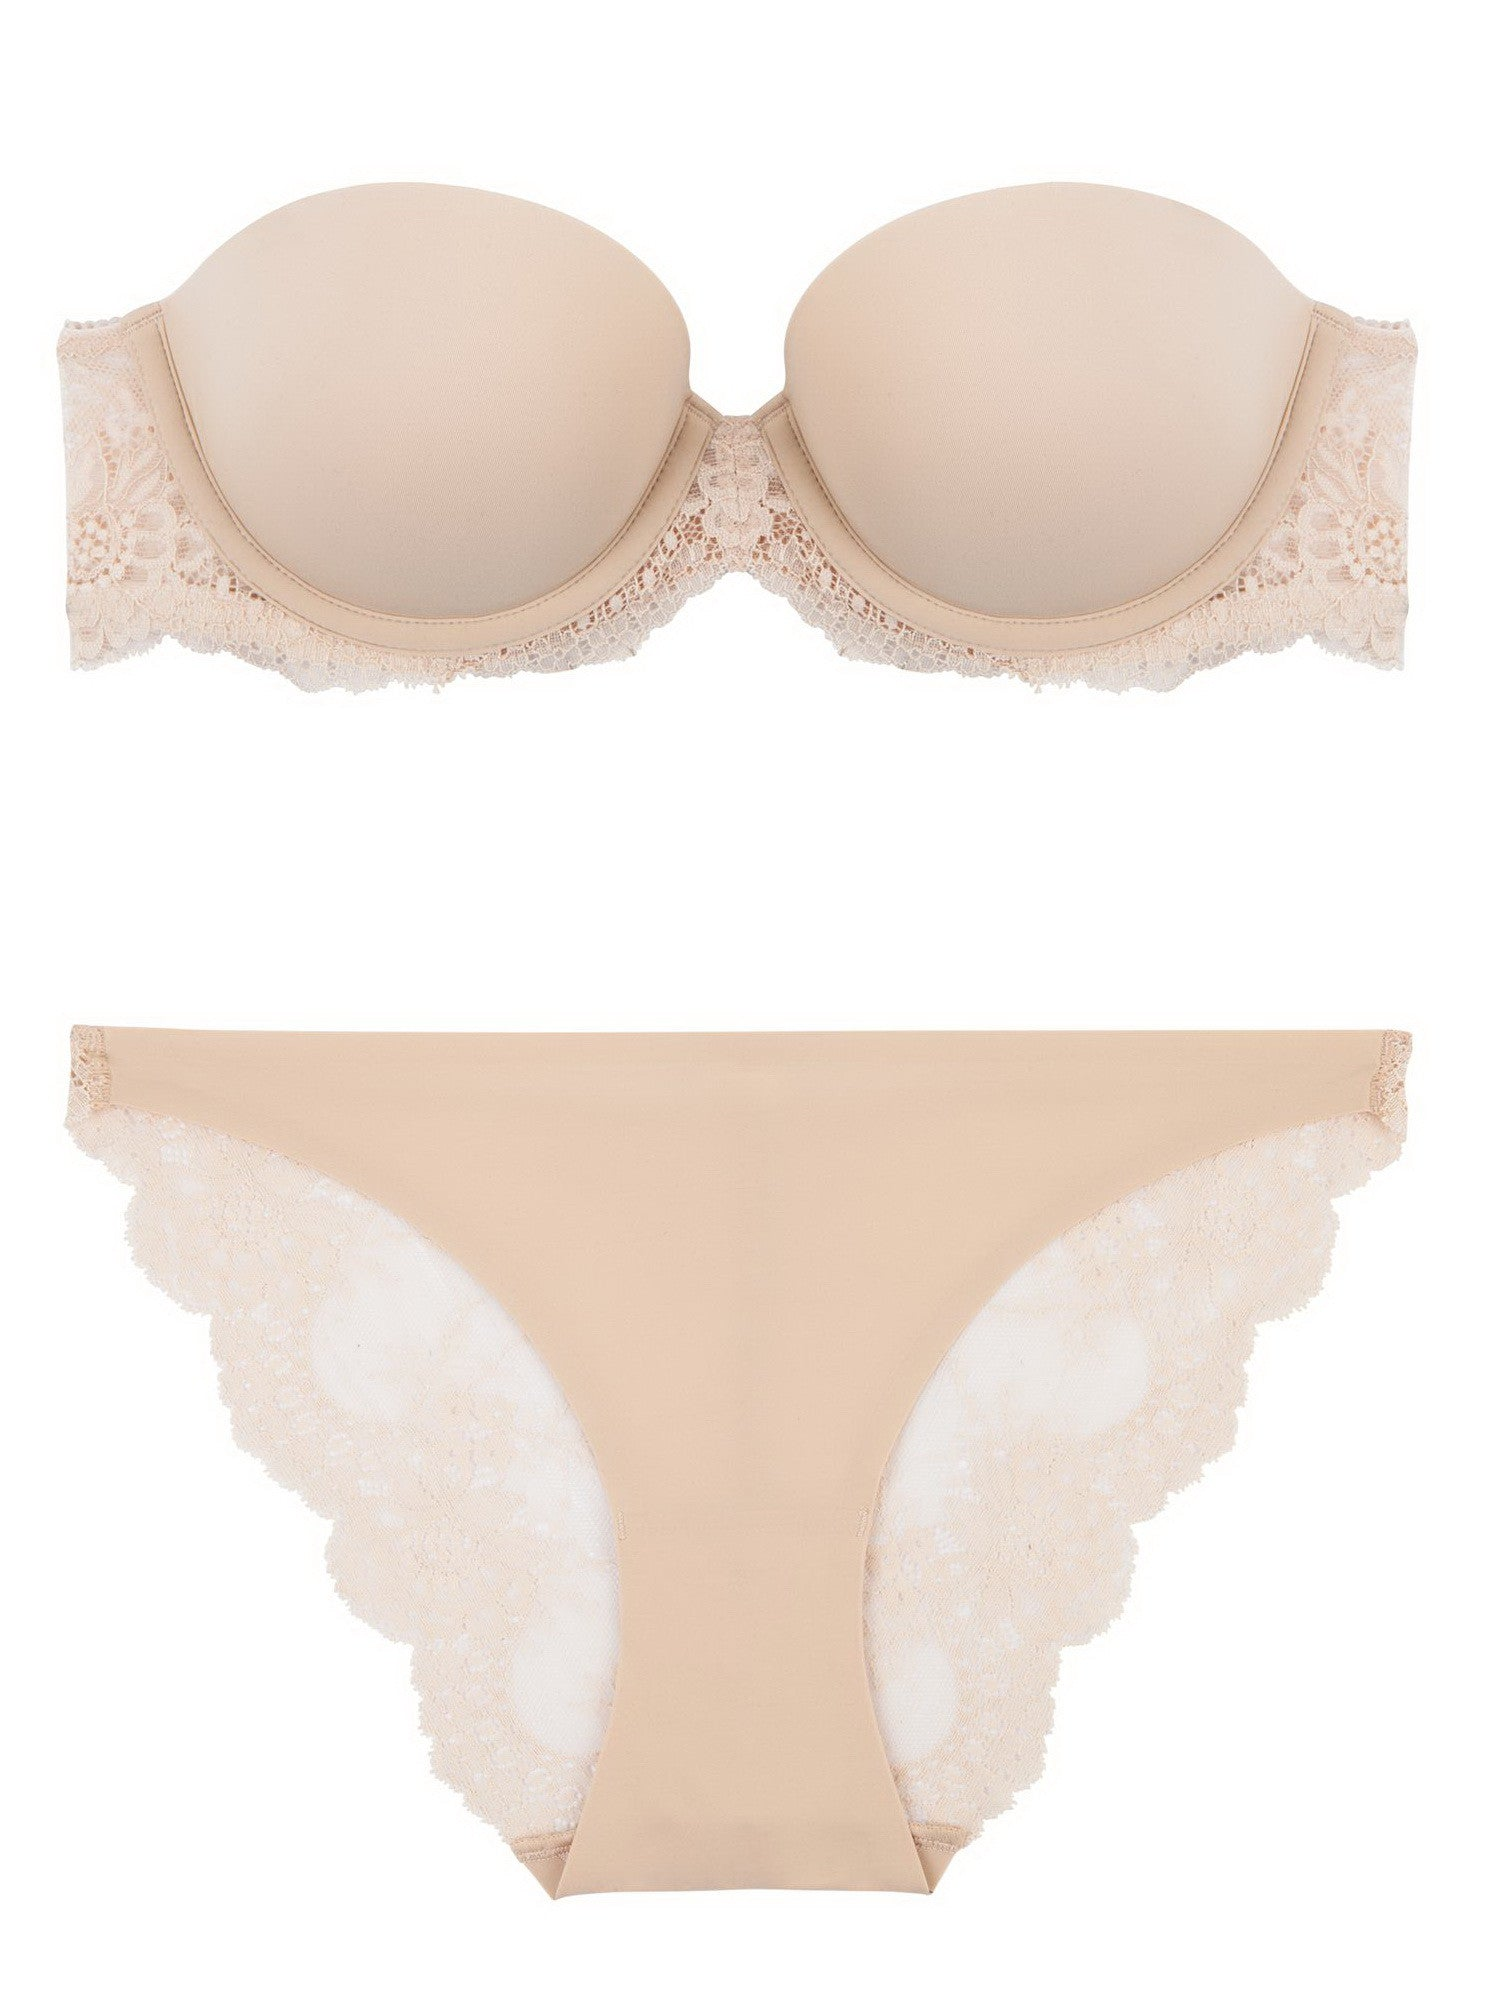 Stella McCartney Lingerie Stella Smooth & Lace Bra-Strapless - Knickers & Pearls Boutique - 1